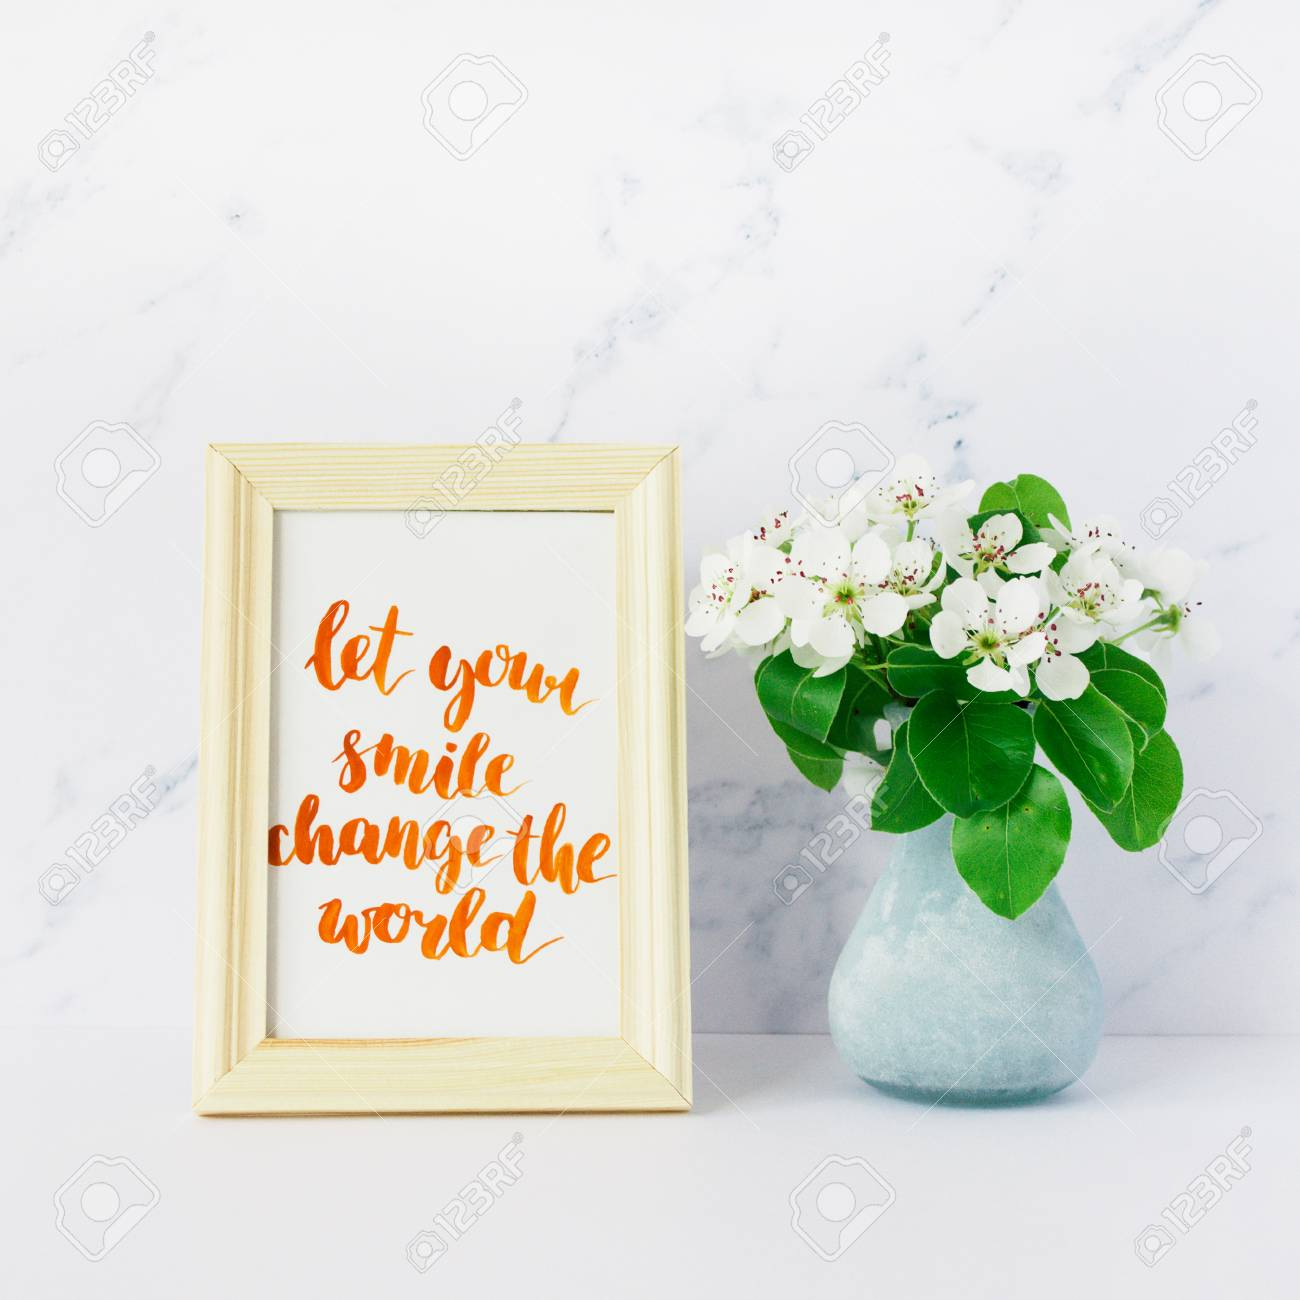 Flowers Of Apple Tree In Vase Card With Inspiration Quote Let